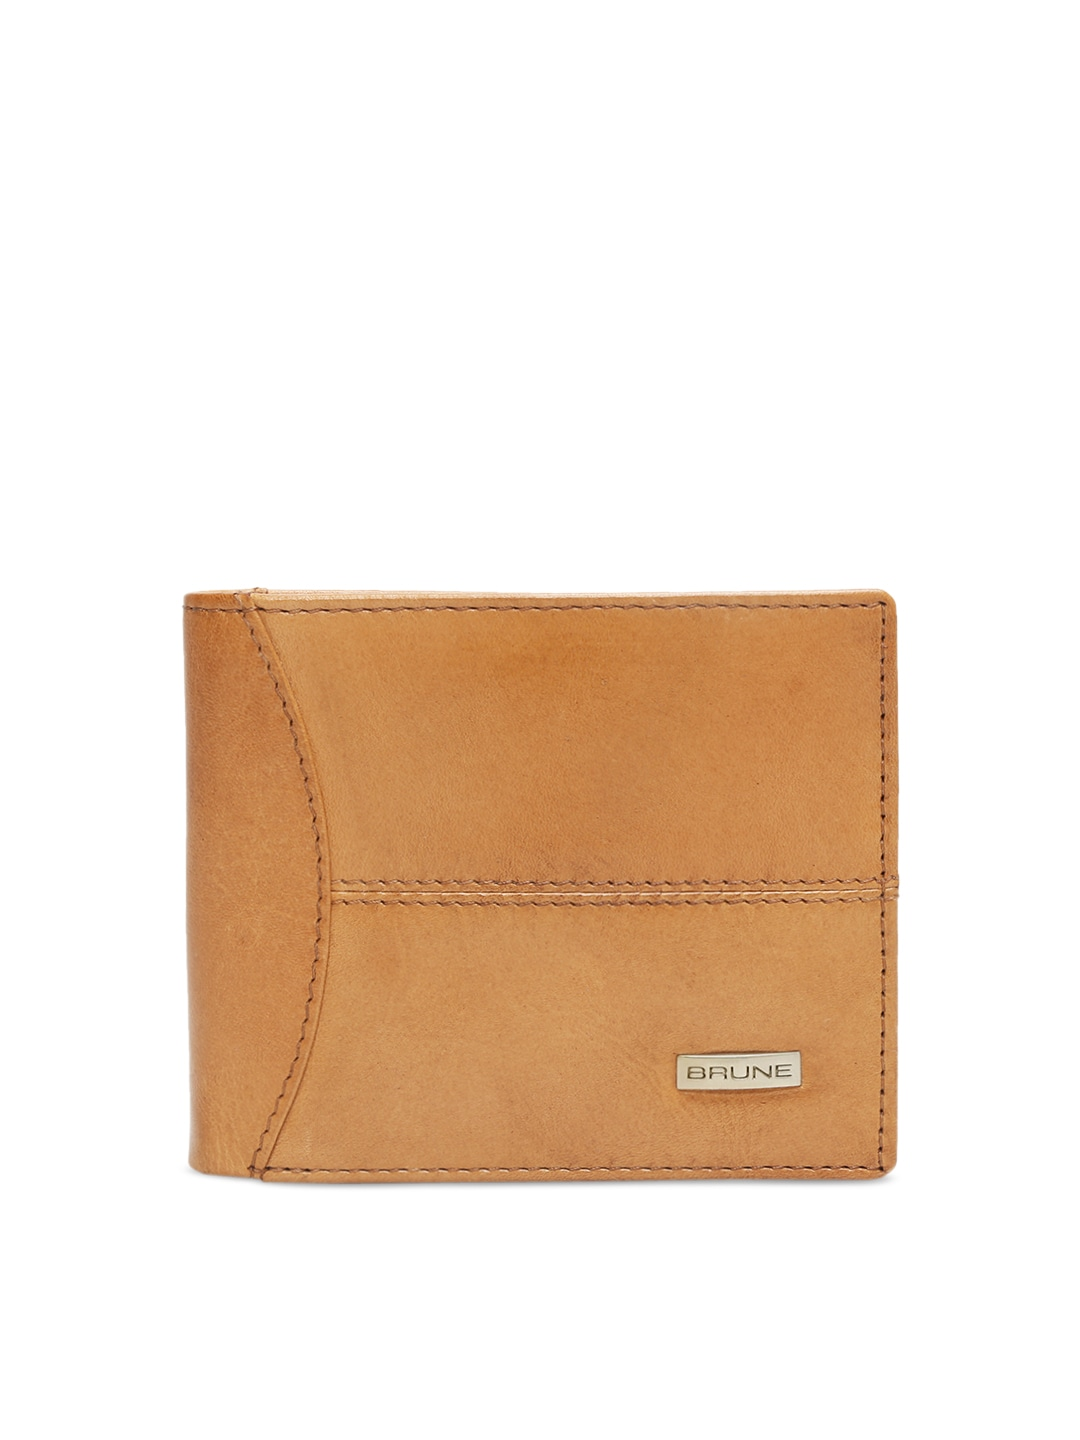 1c6f6b96c6 BRUNE Men Tan Brown Solid Leather Two Fold Wallet